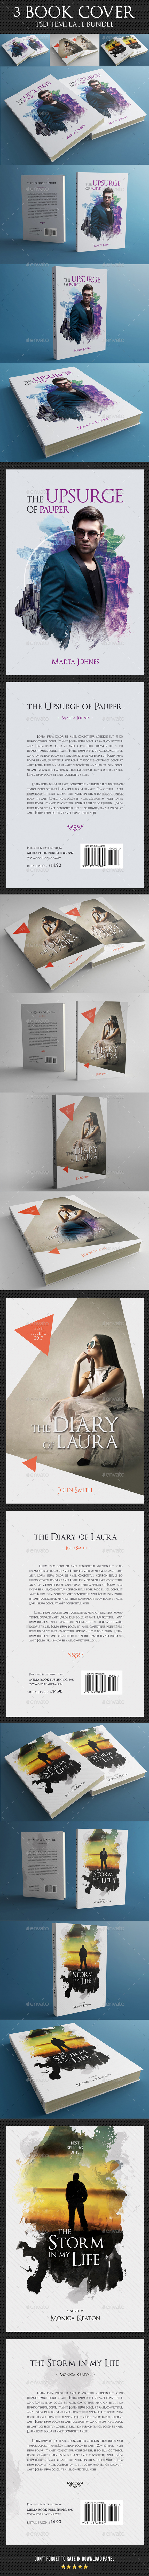 3 in 1 Book Cover Template Bundle 08